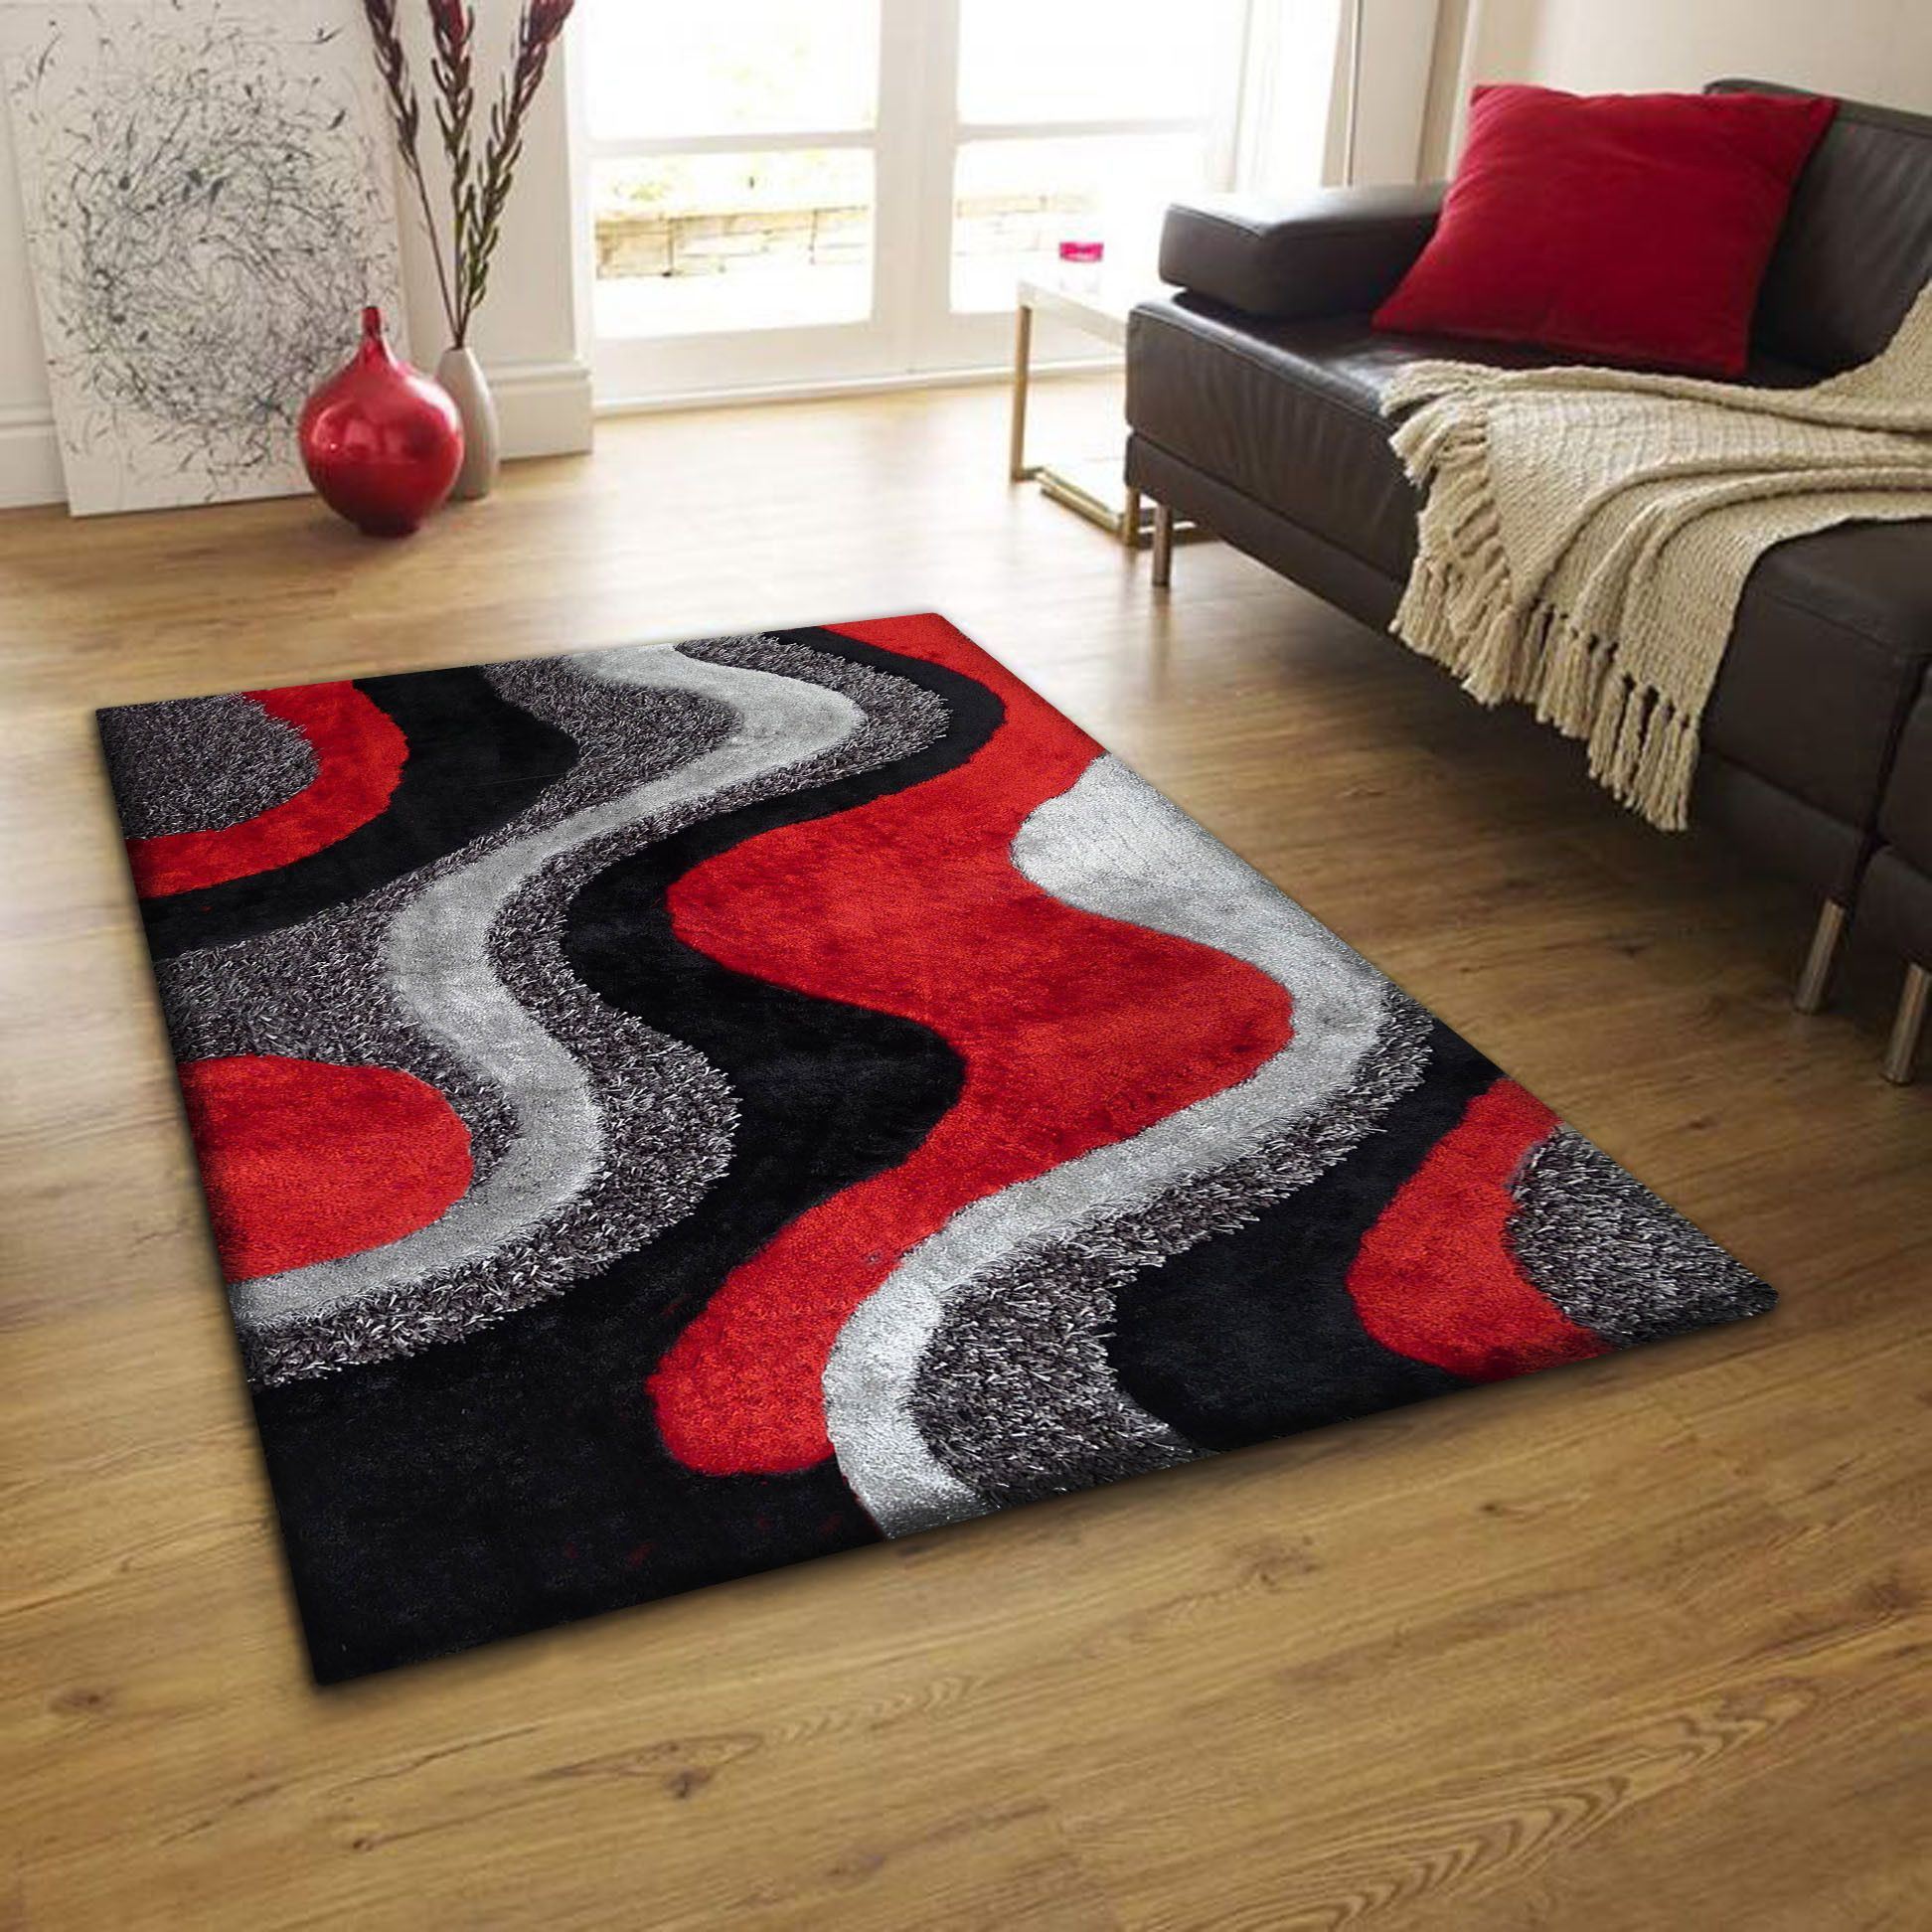 Black Grey with Red Shag Area Rug